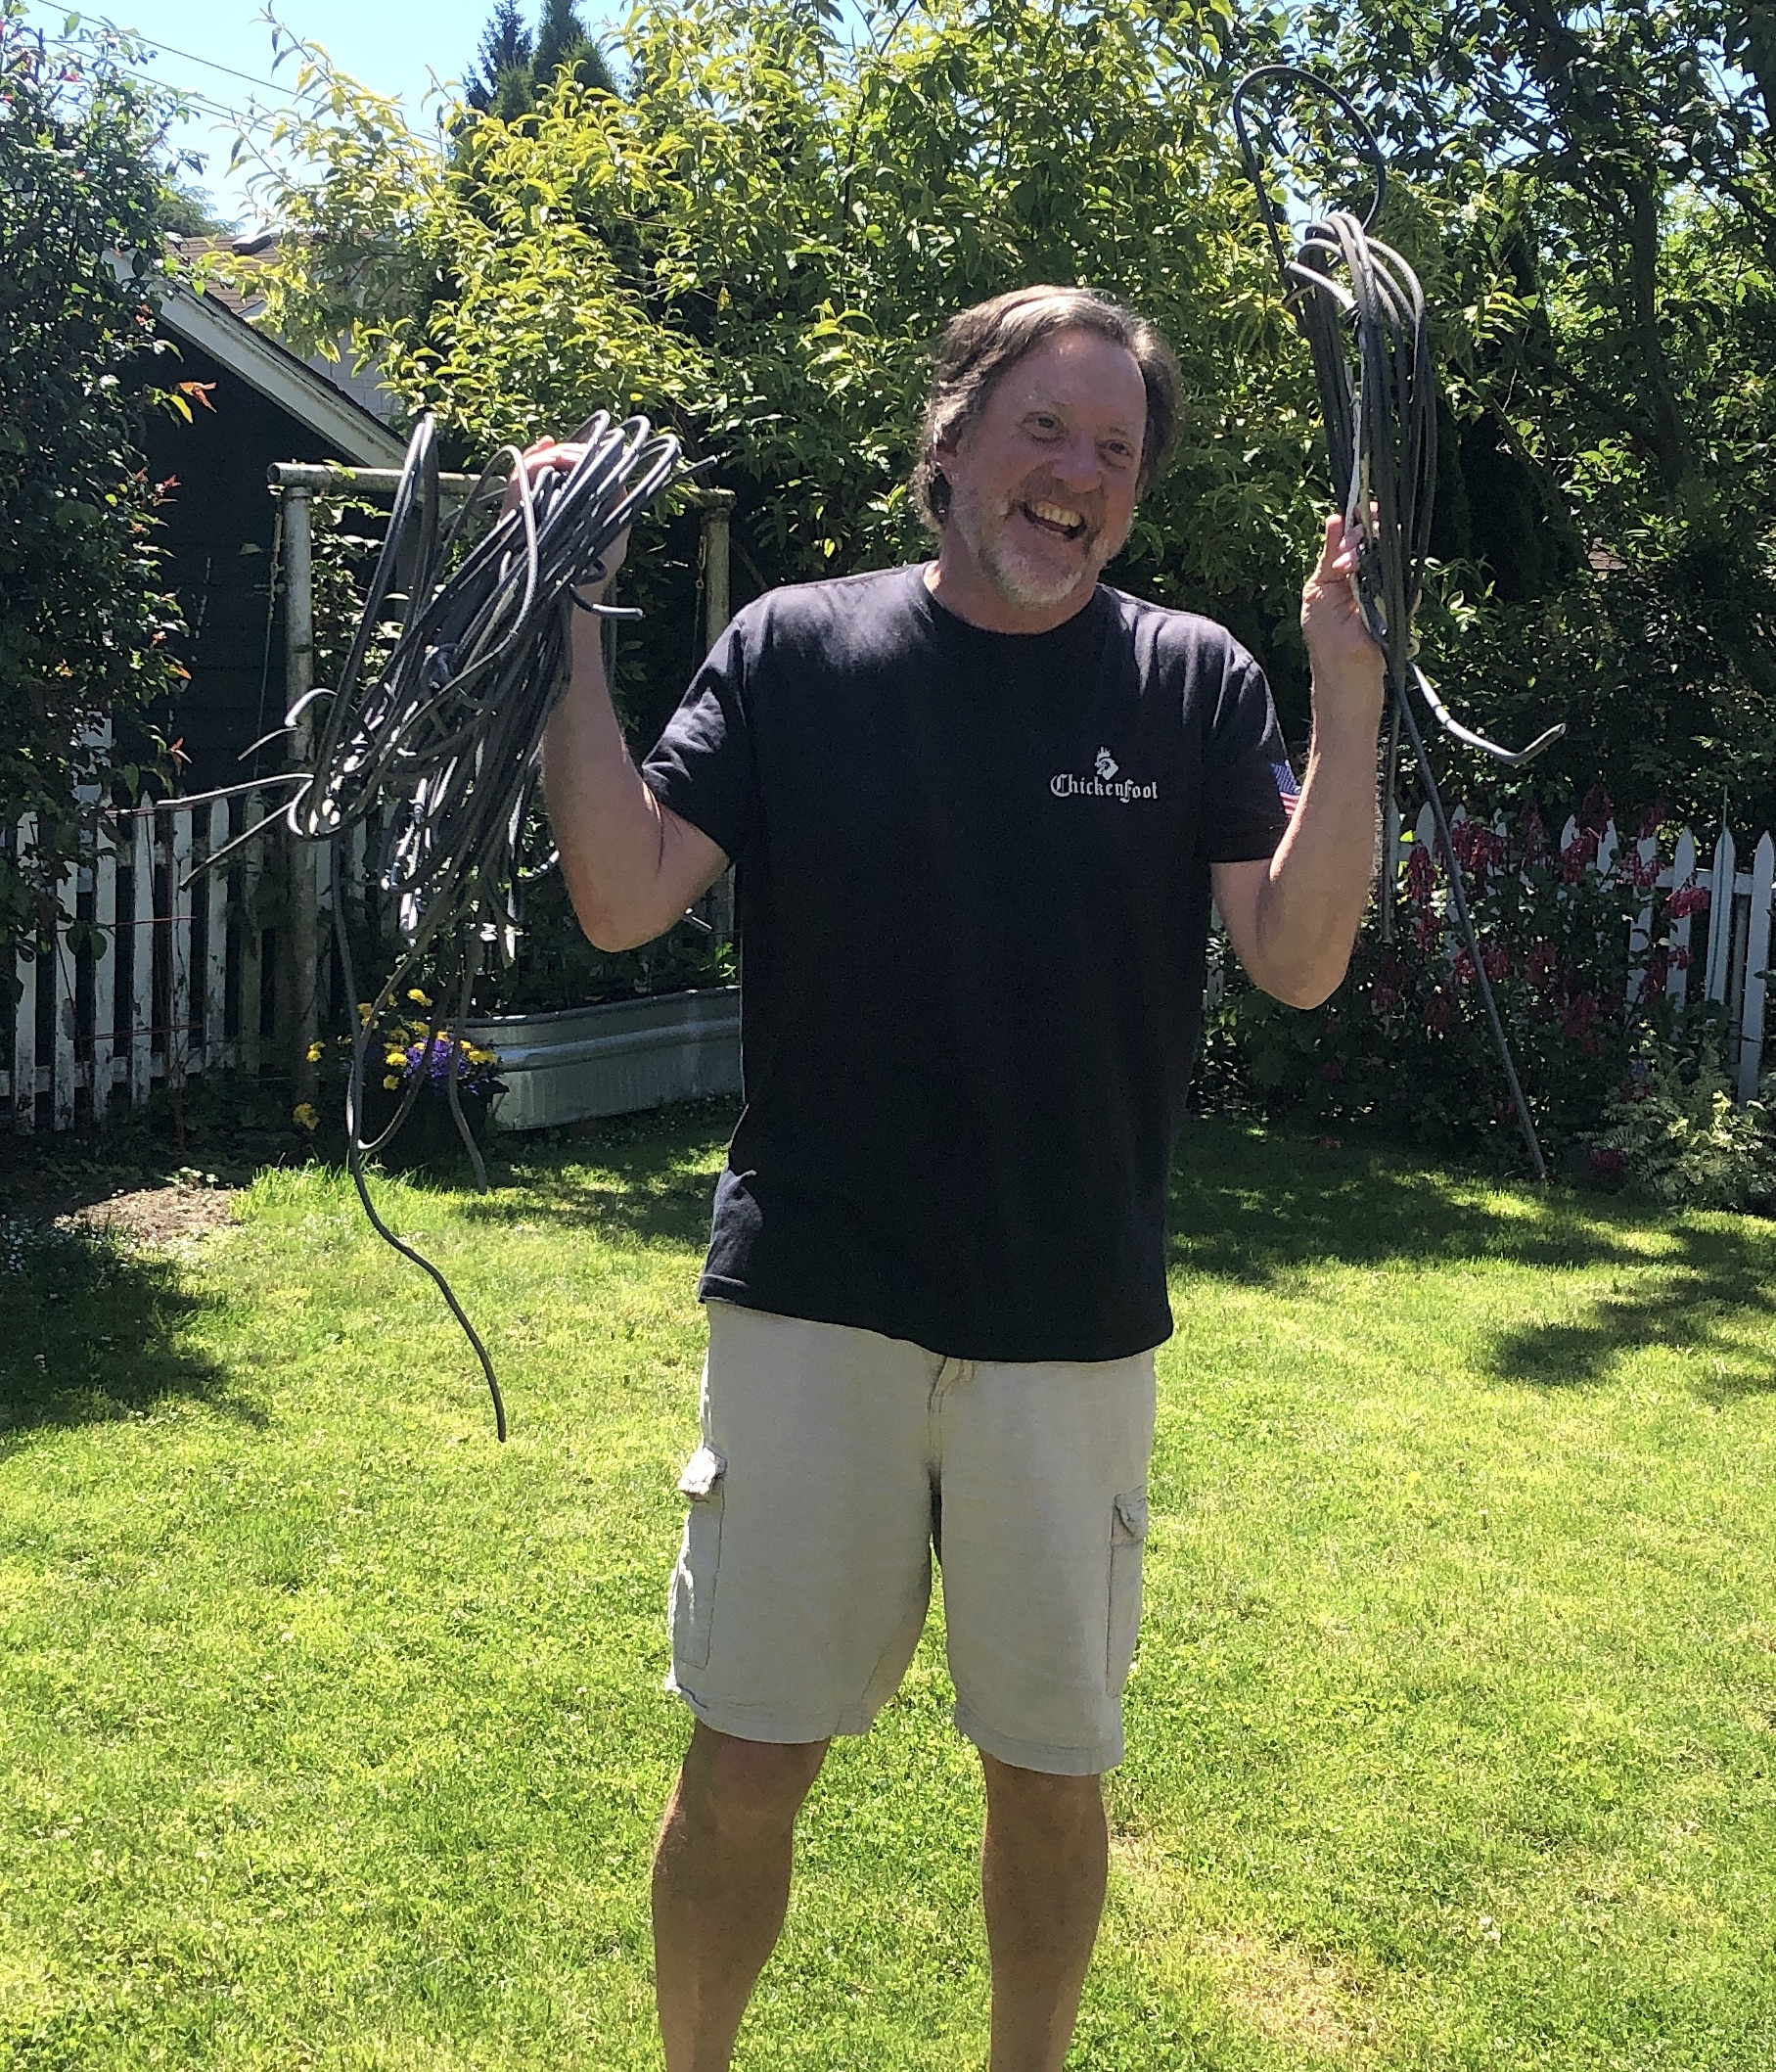 Man holding coil of wires we removed from his home